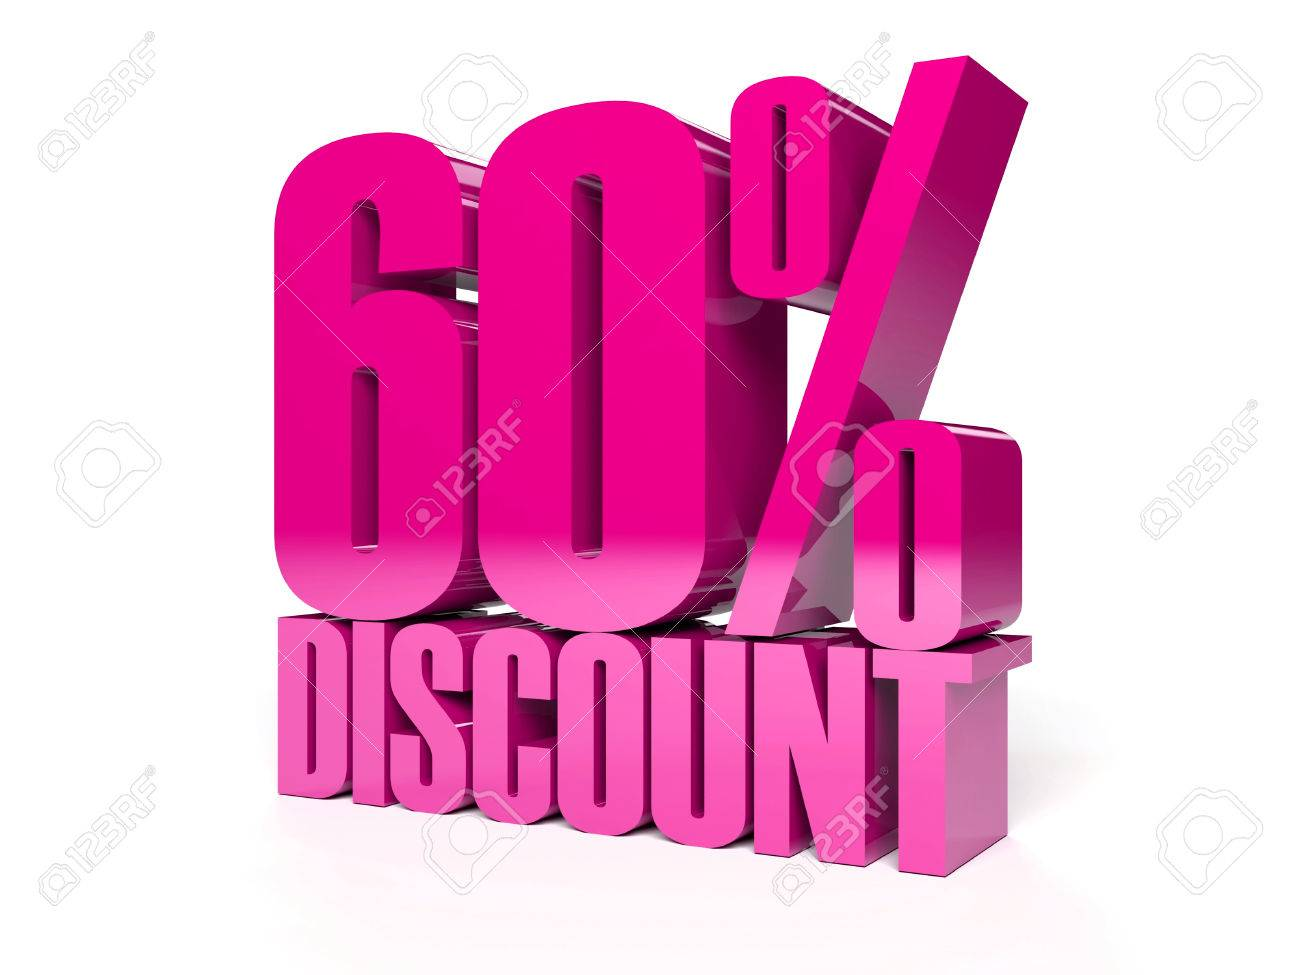 60 percent discount. Pink shiny text. Concept 3D illustration. Stock Illustration - 22491884